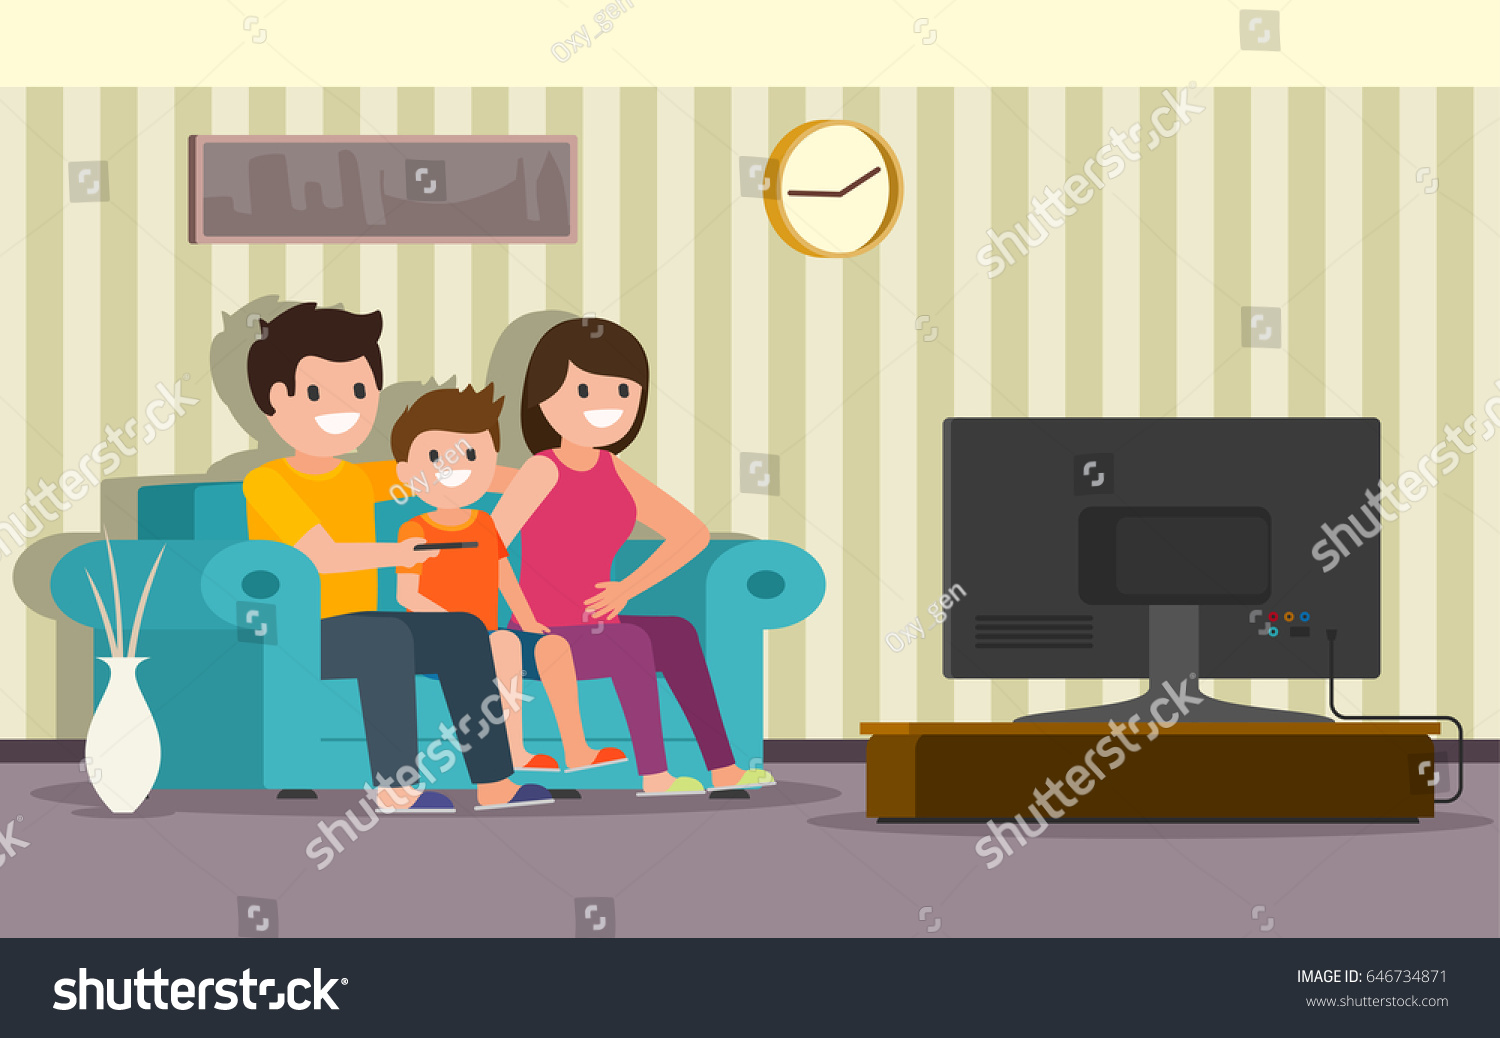 Happy Family Sitting On A Sofa In Living Room Front Of The Television Screen